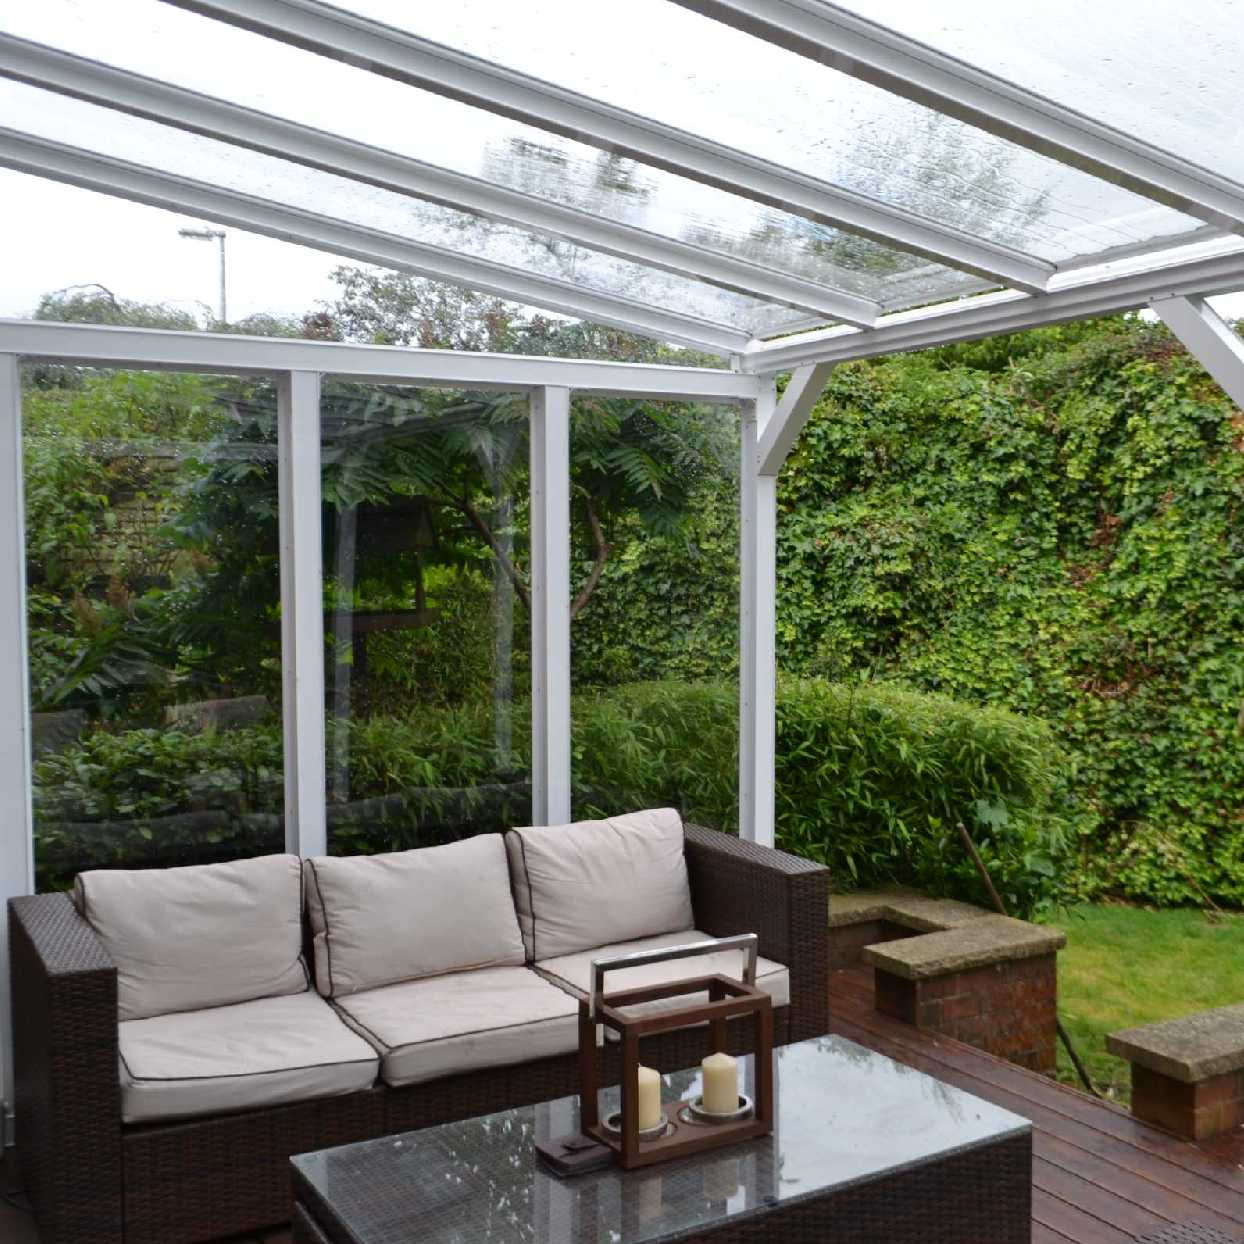 Great selection of Omega Smart White Lean-To Canopy with 16mm Polycarbonate Glazing - 10.6m (W) x 2.5m (P), (5) Supporting Posts